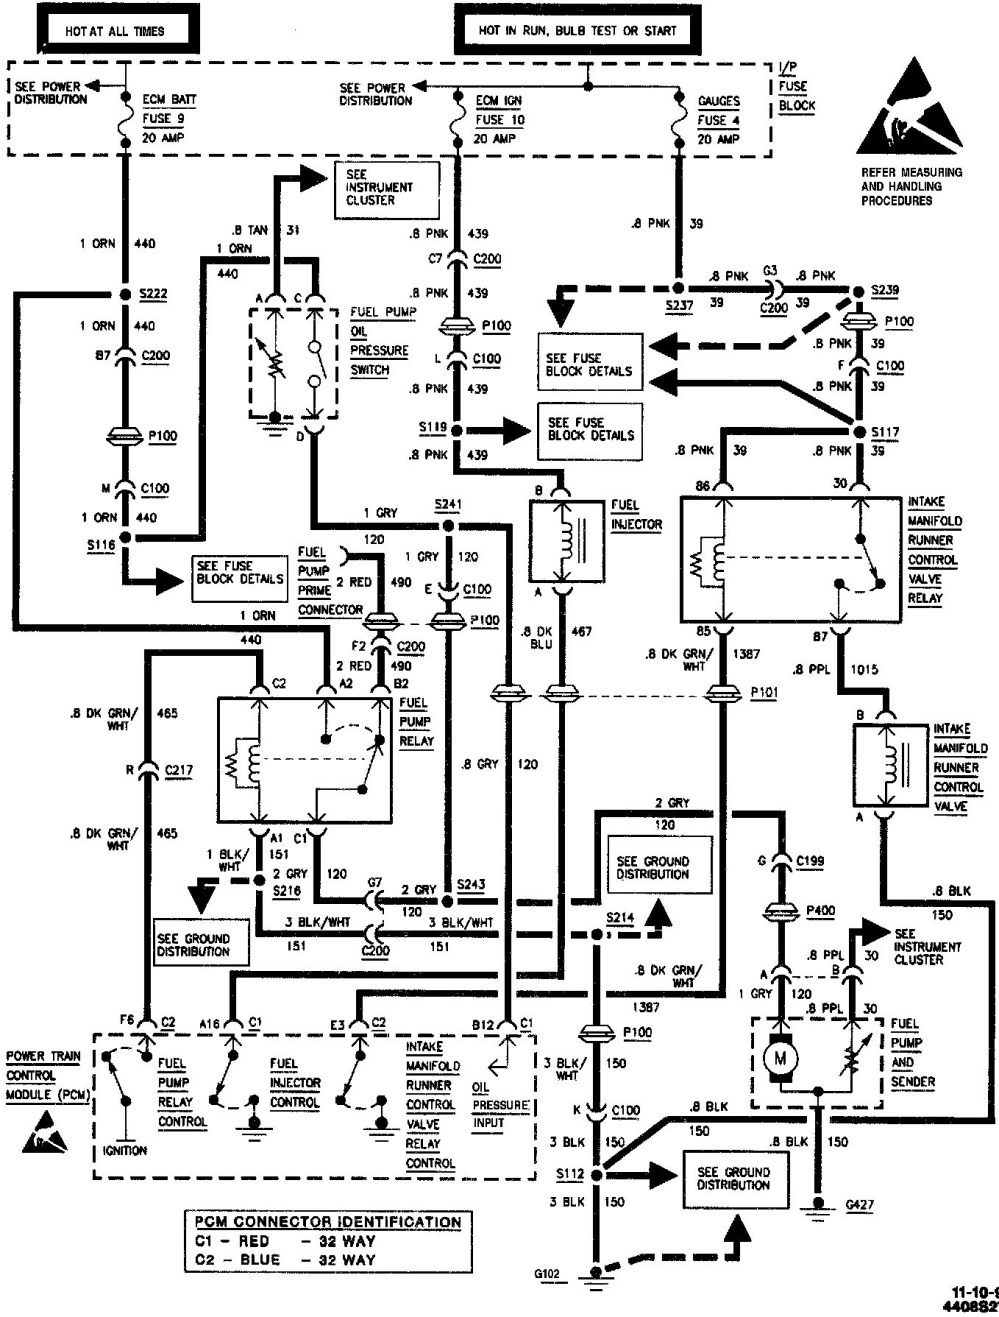 medium resolution of 82 s10 wiring harness wiring diagram expert 82 s10 wiring harness